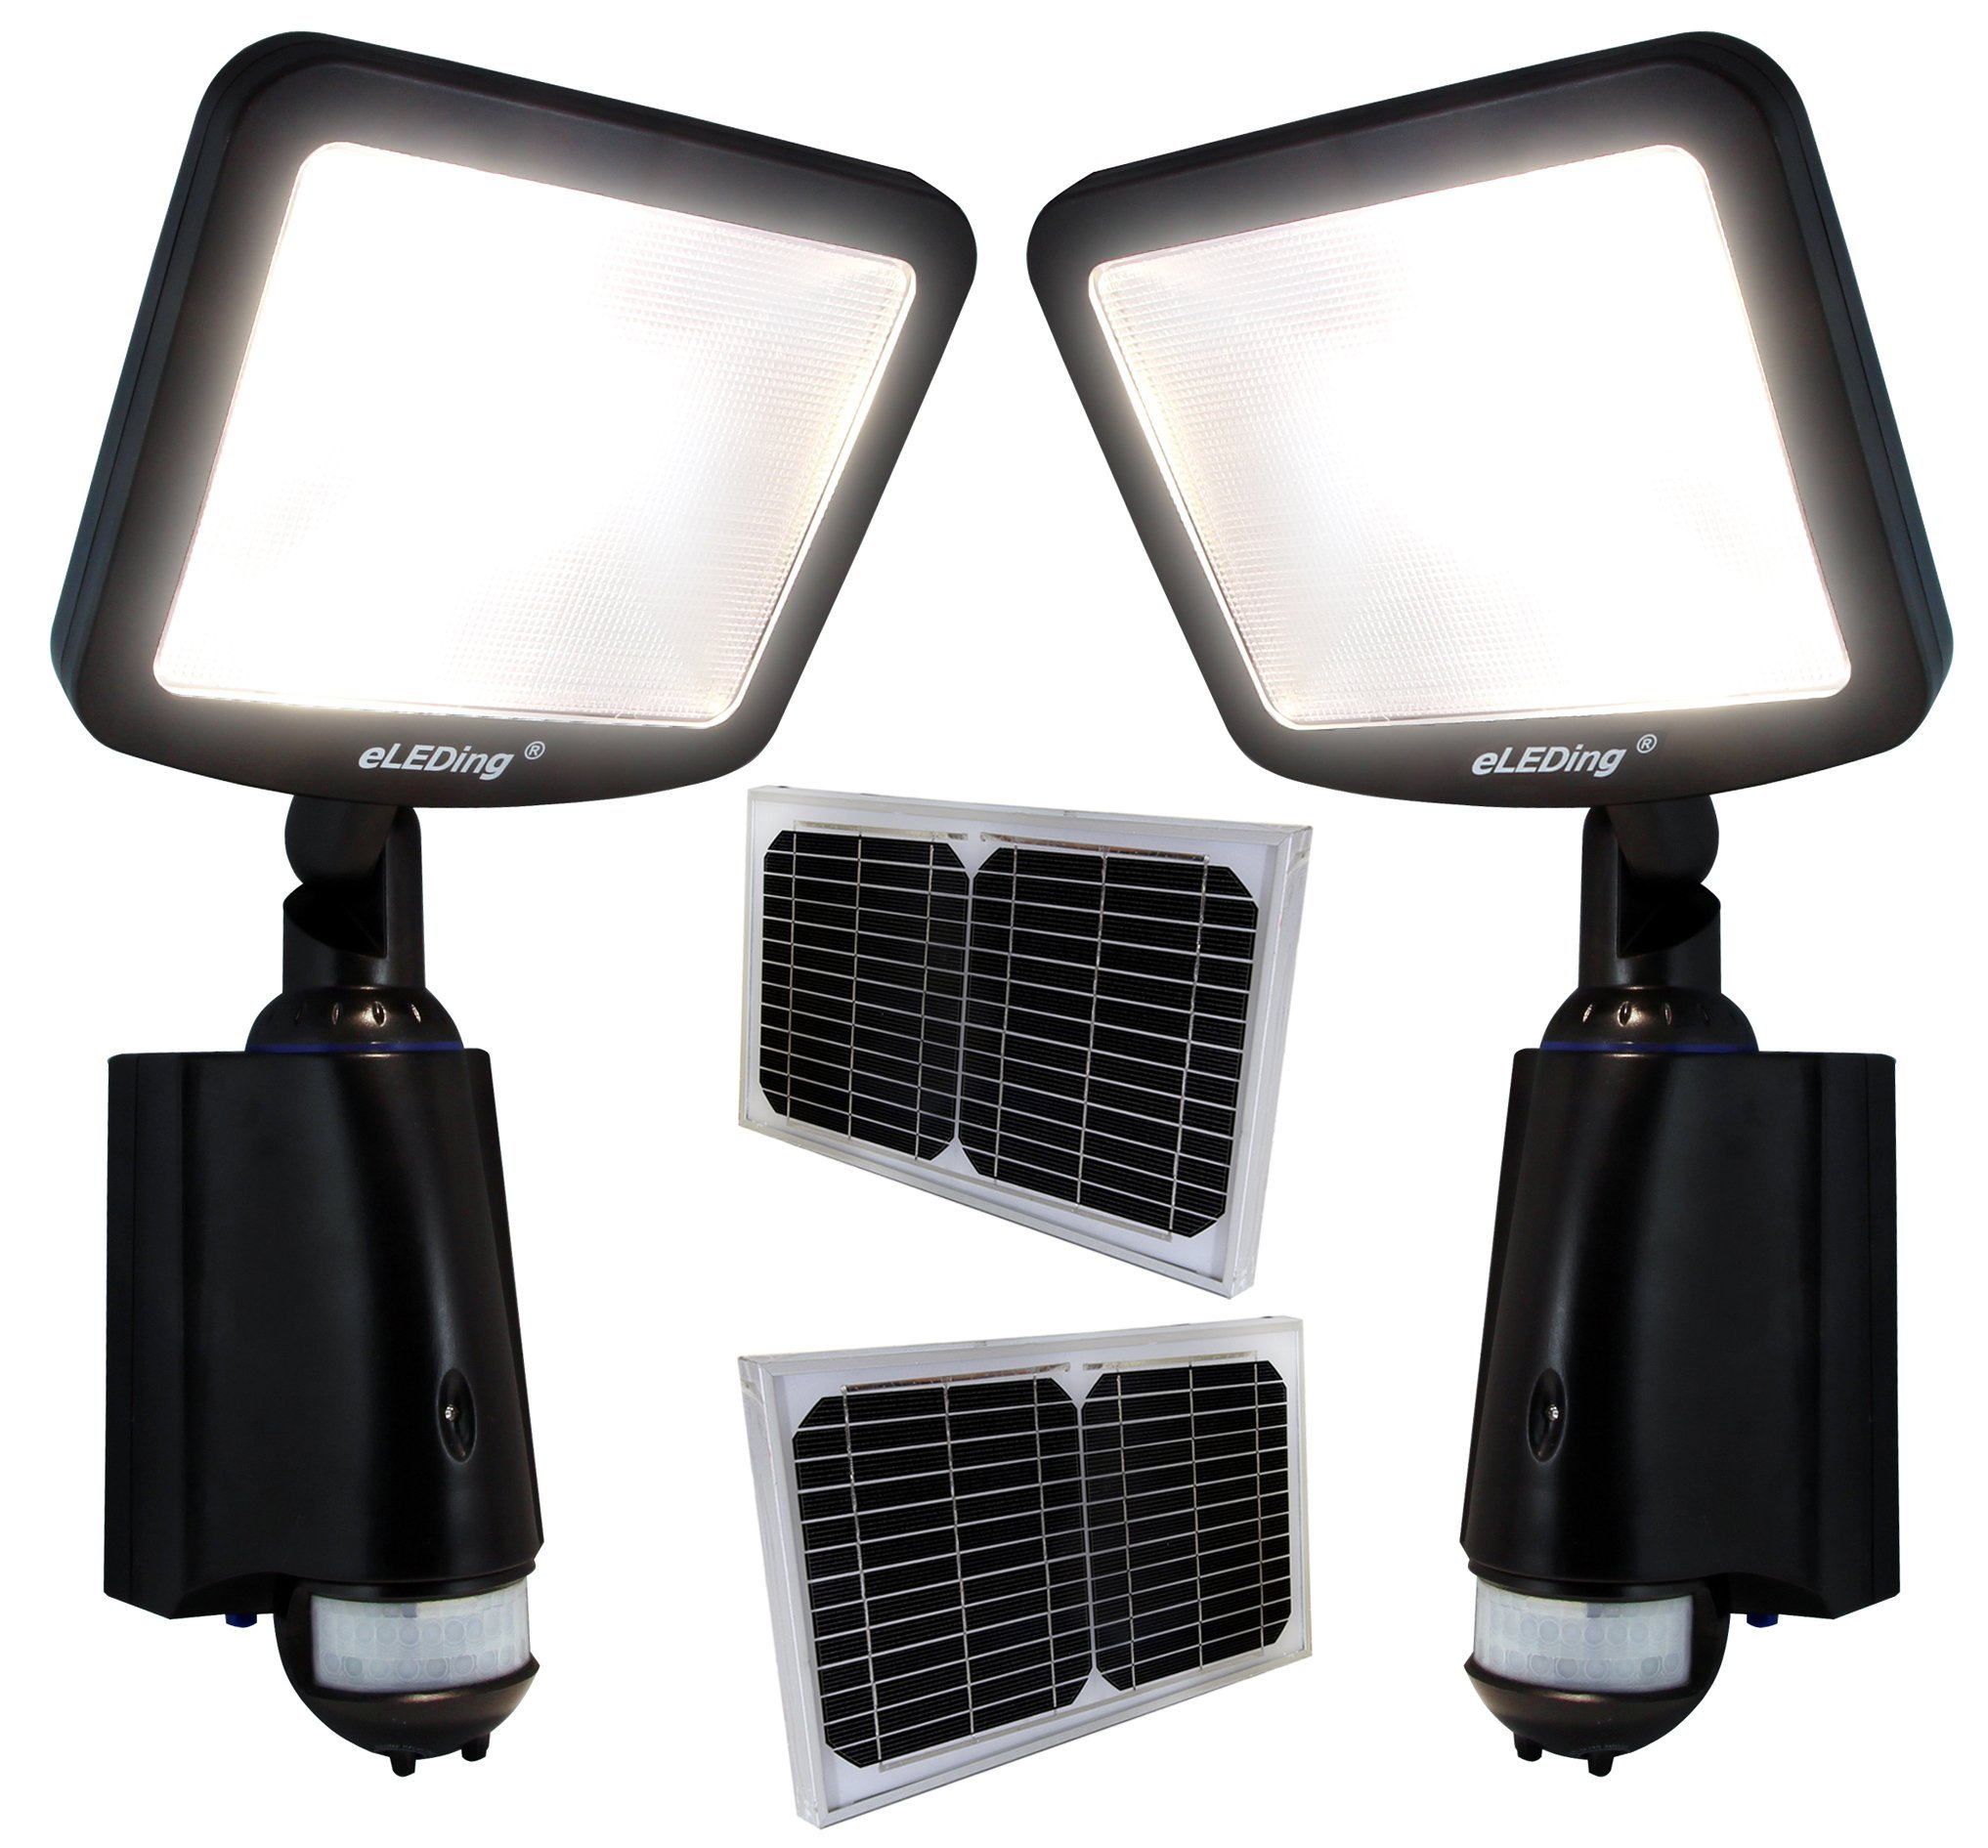 2PC LED Dusk to Dawn Outdoor Lighting 8W CREE 28WH Li-Poly Battery 100W Halogen Equiv. for Back Yardence (Black)